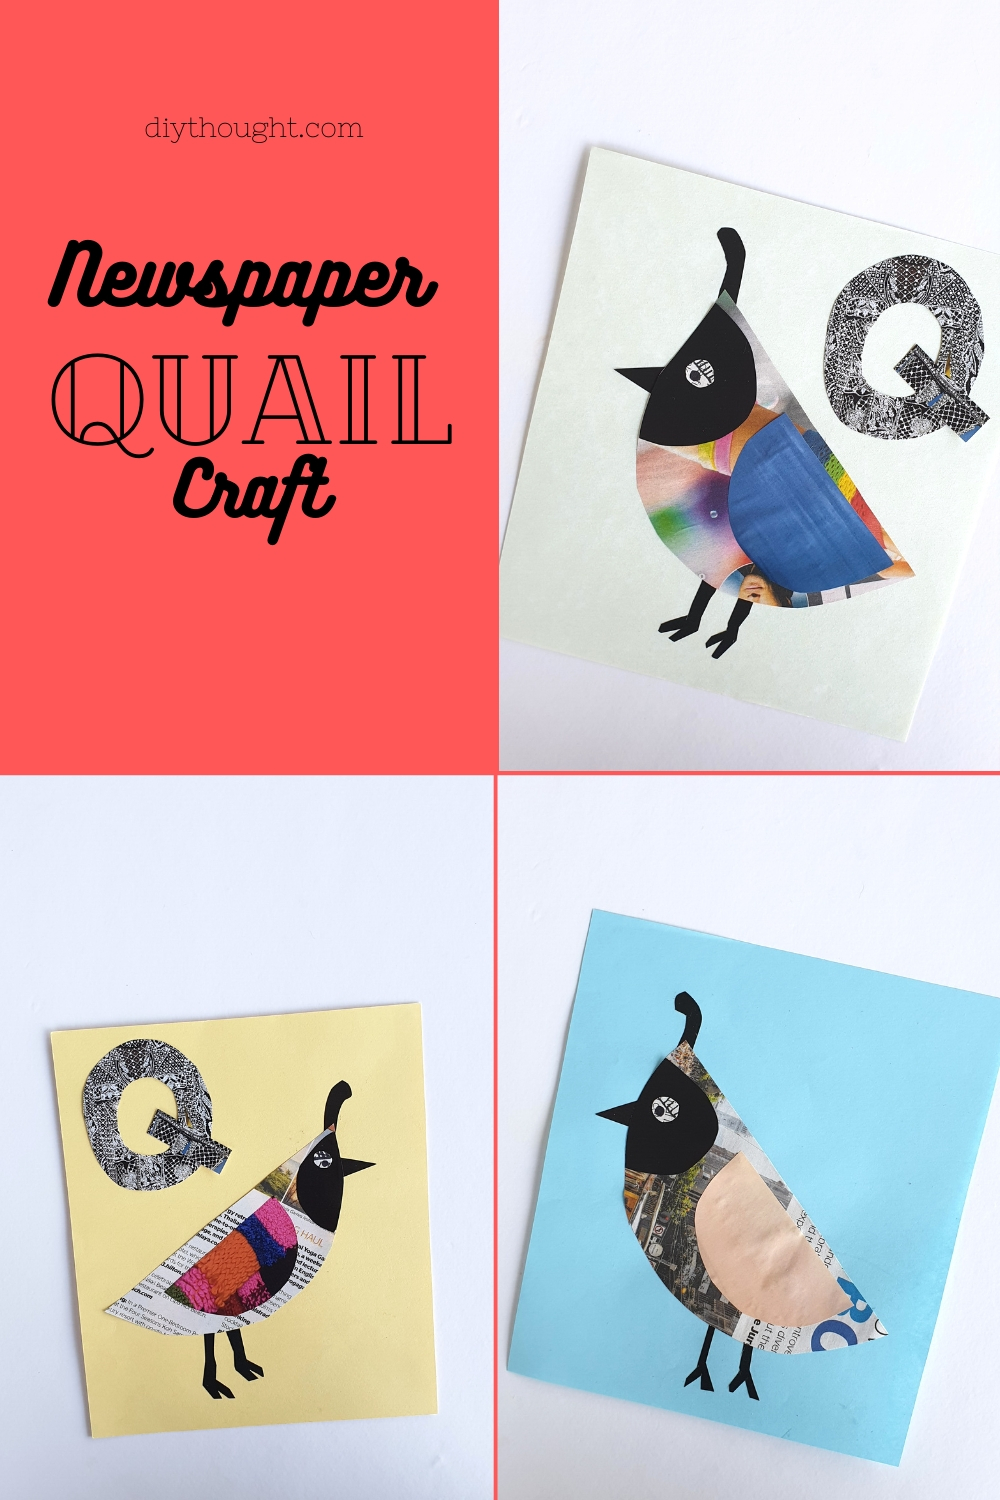 Newspaper quail craft